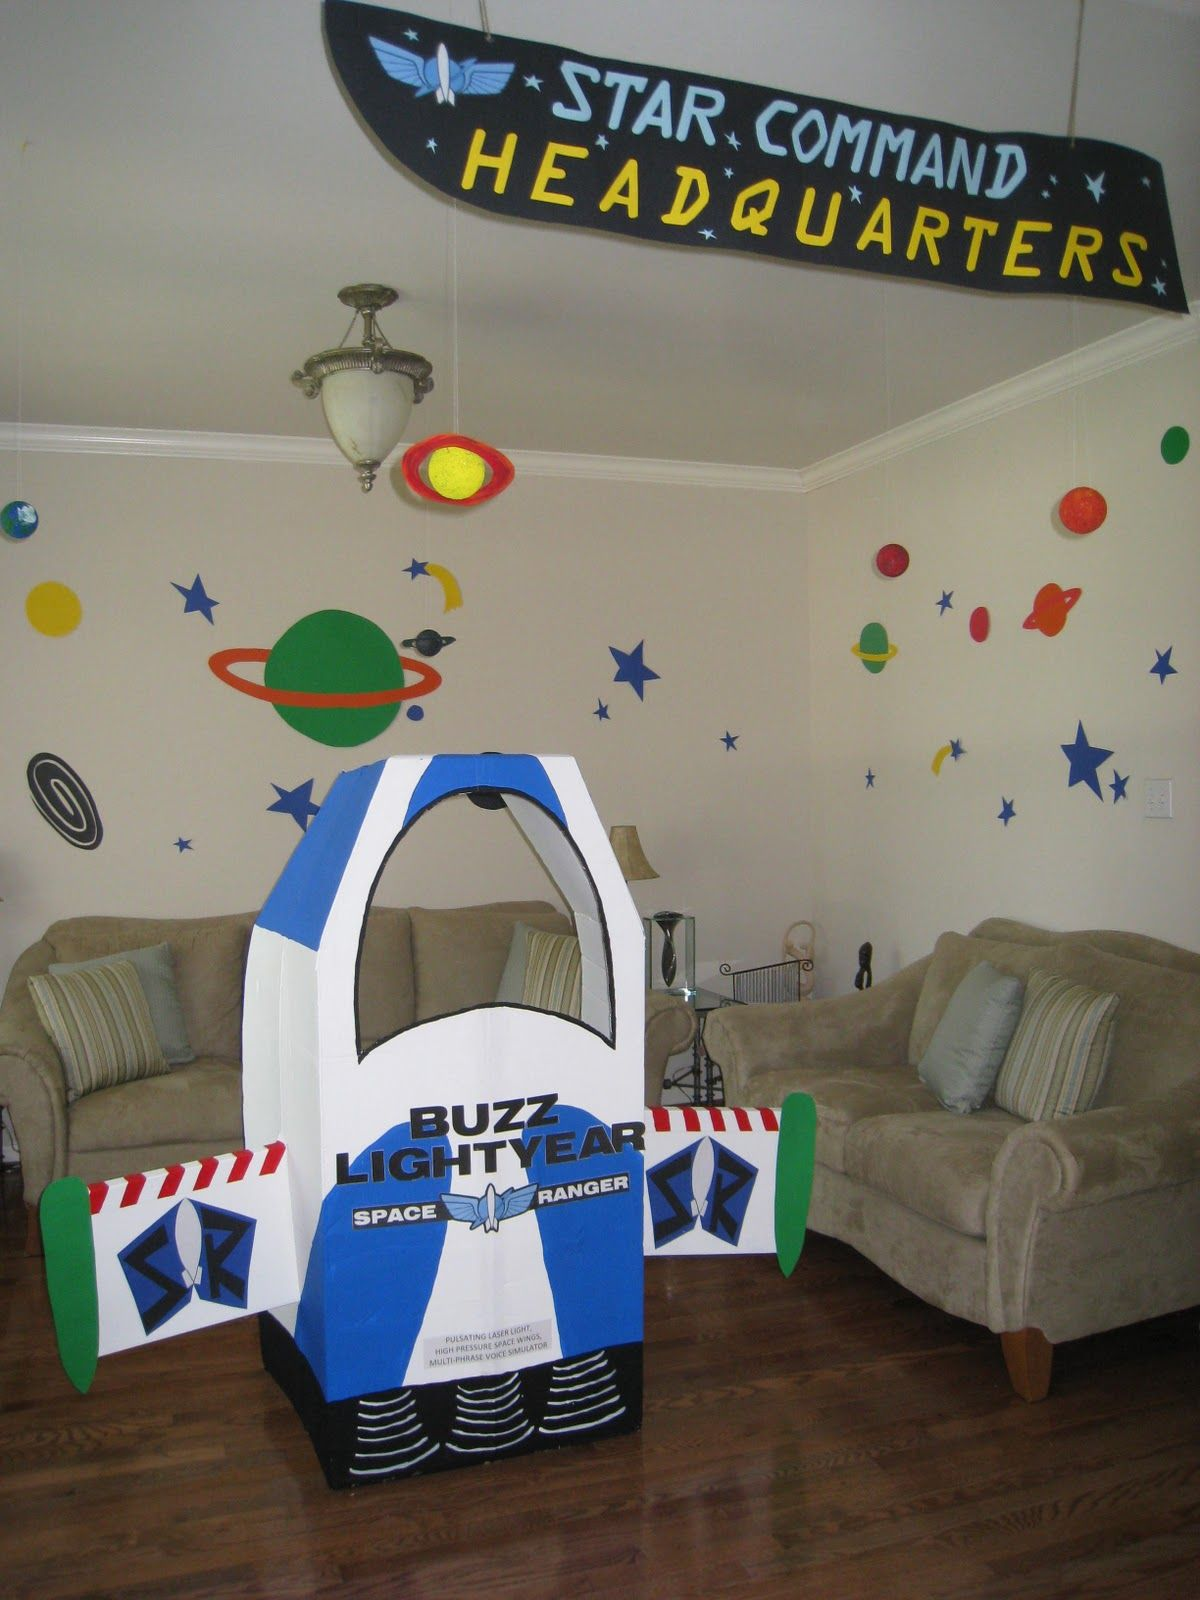 Toy story party ideas birthday in a box - Fort Friday Space Edition Toy Story Birthdaytoy Story Party2nd